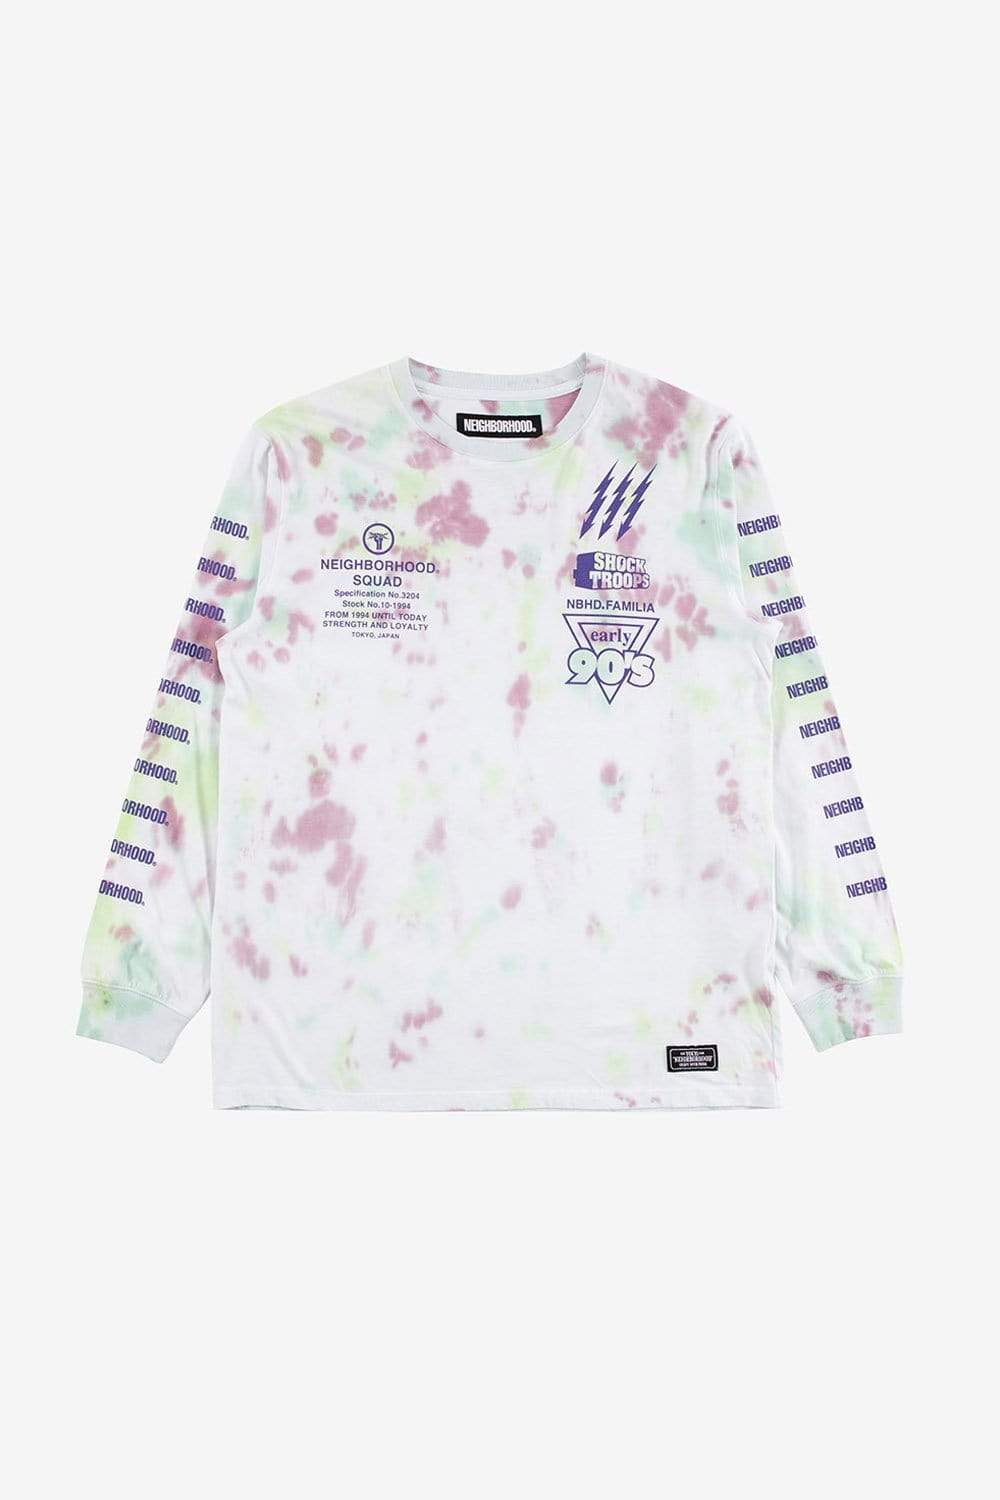 Neighborhood Apparel Dye Long Sleeve Tee